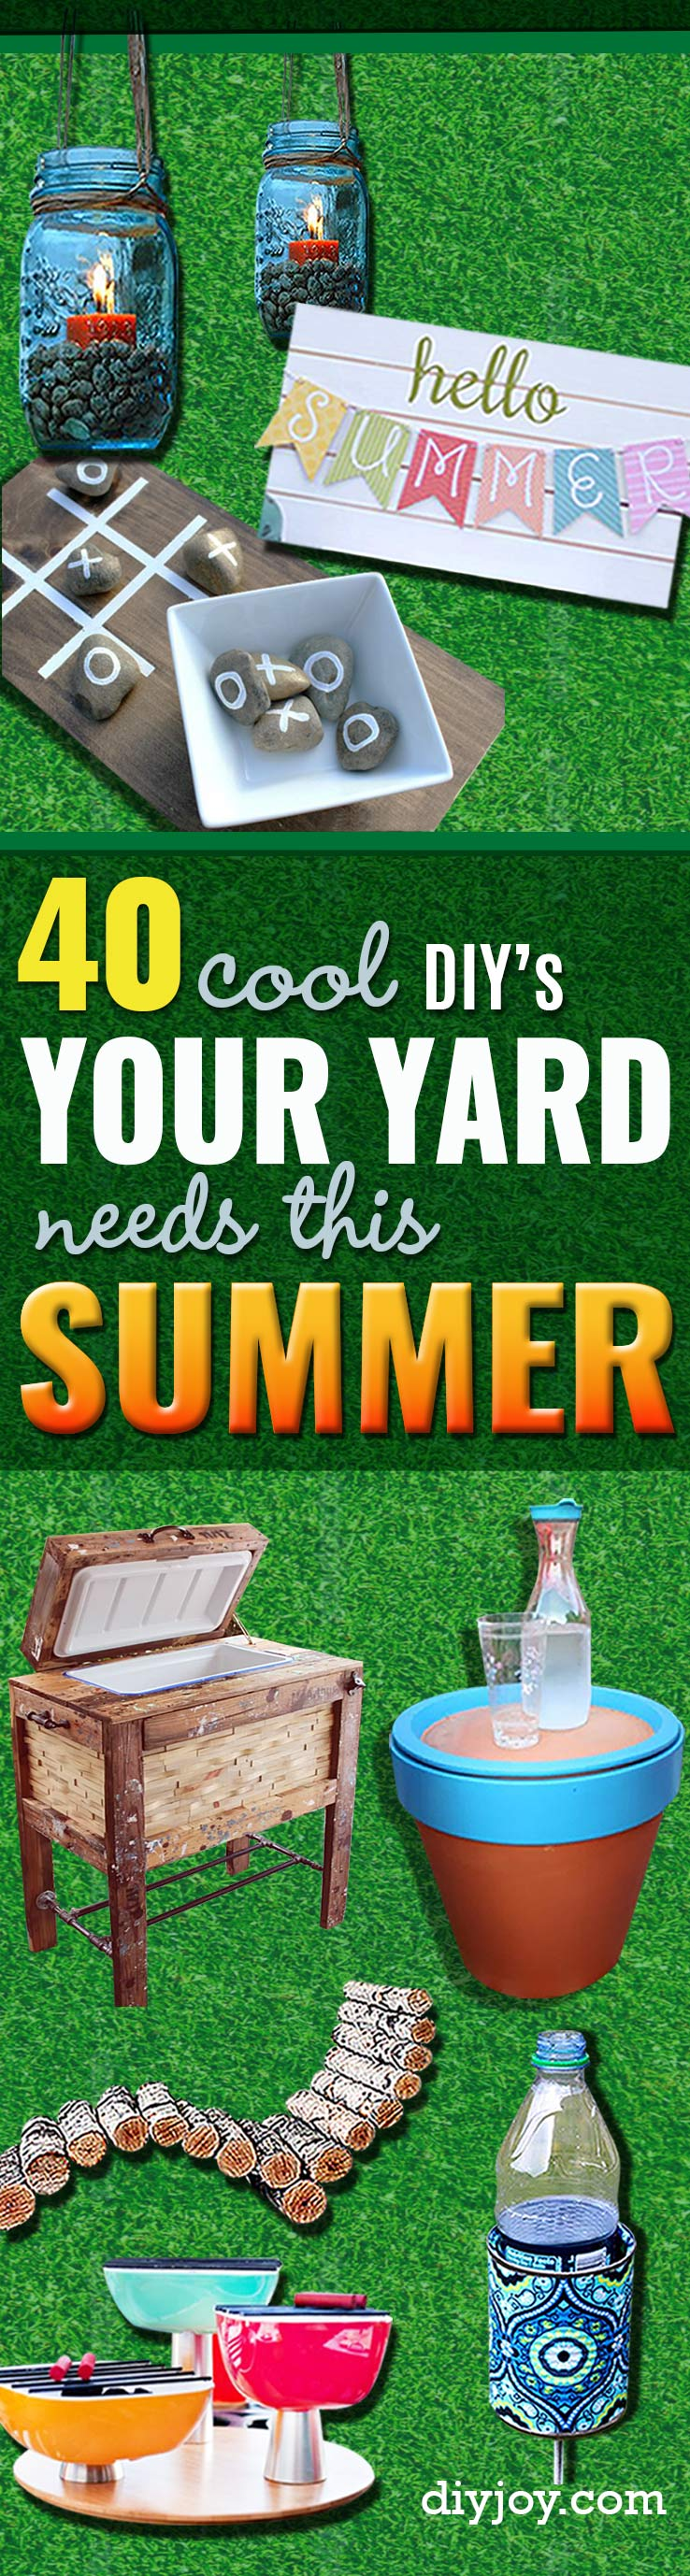 41 cool diys to get your backyard ready for summer diy joy